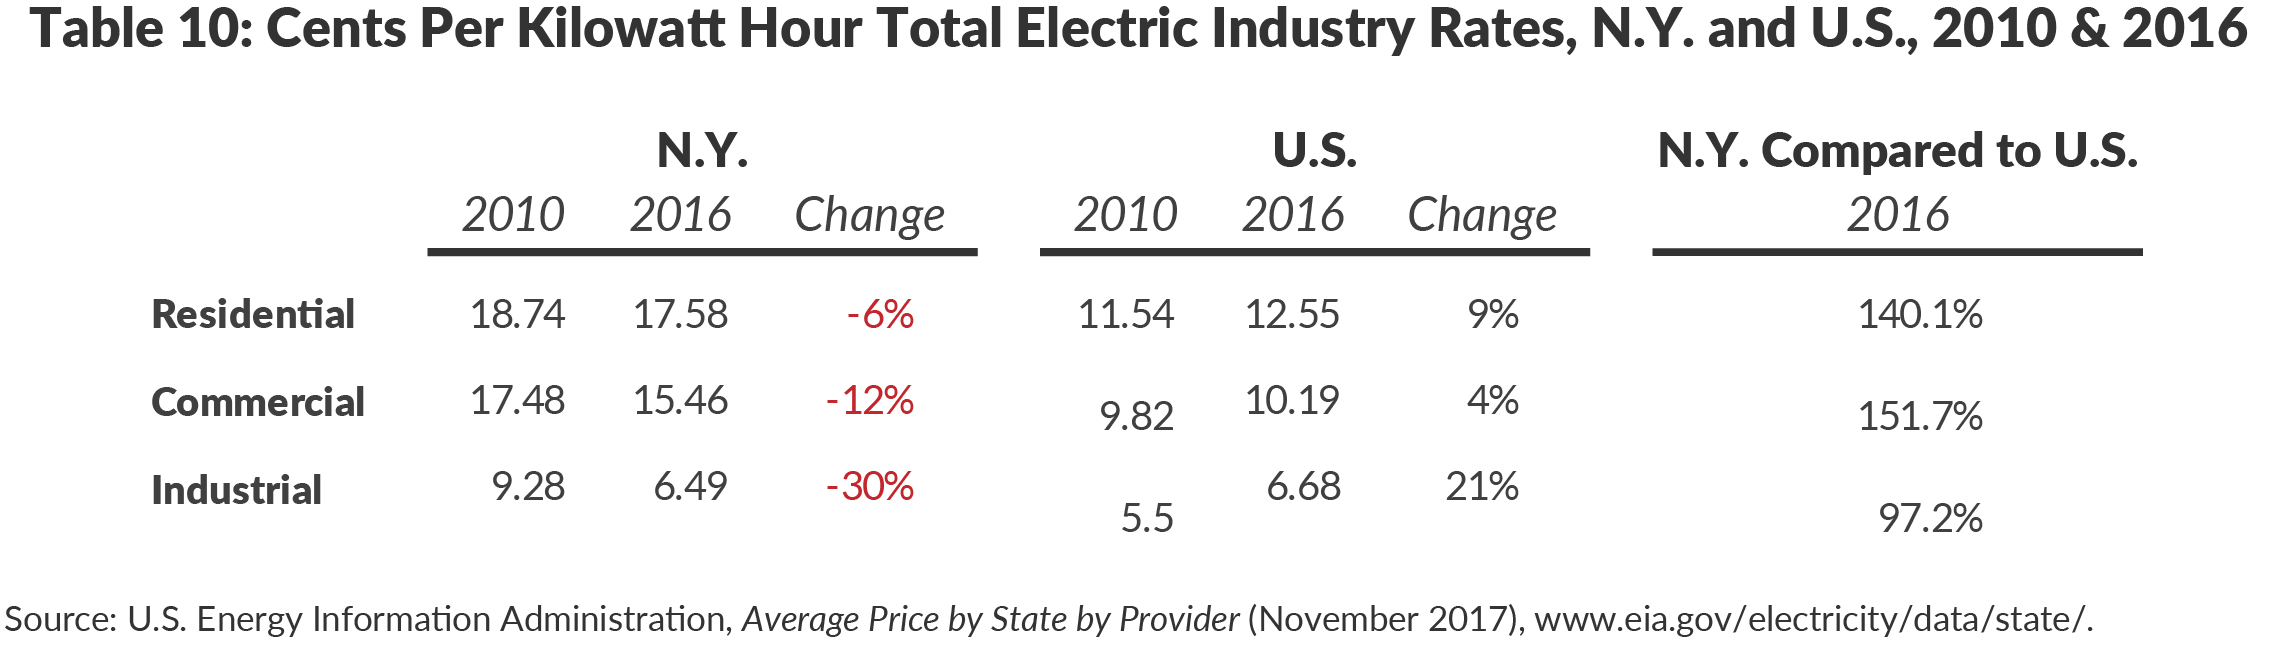 Table 10: Cents Per Kilowatt Hour Total Electric Industry Rates, N.Y. and U.S., 2010 & 2016